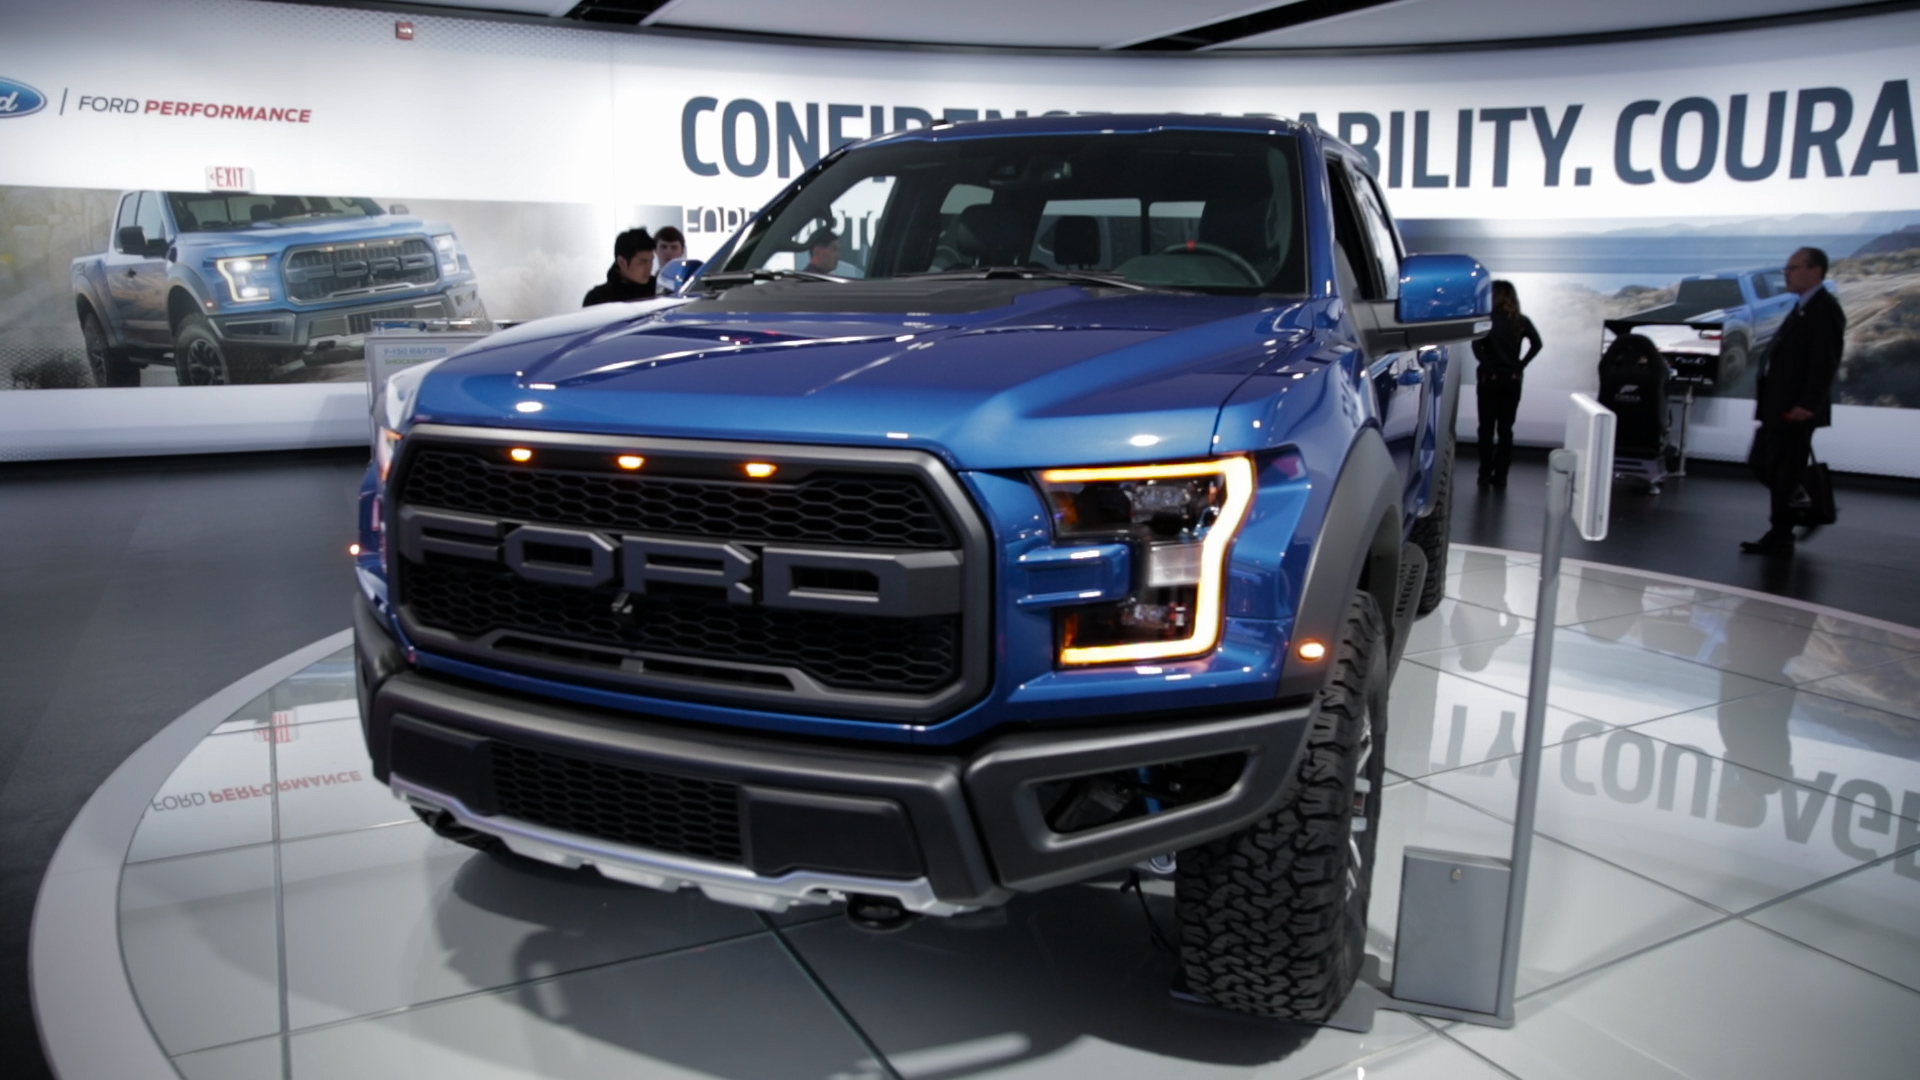 Video: Rejoice! The second generation Ford Raptor is here